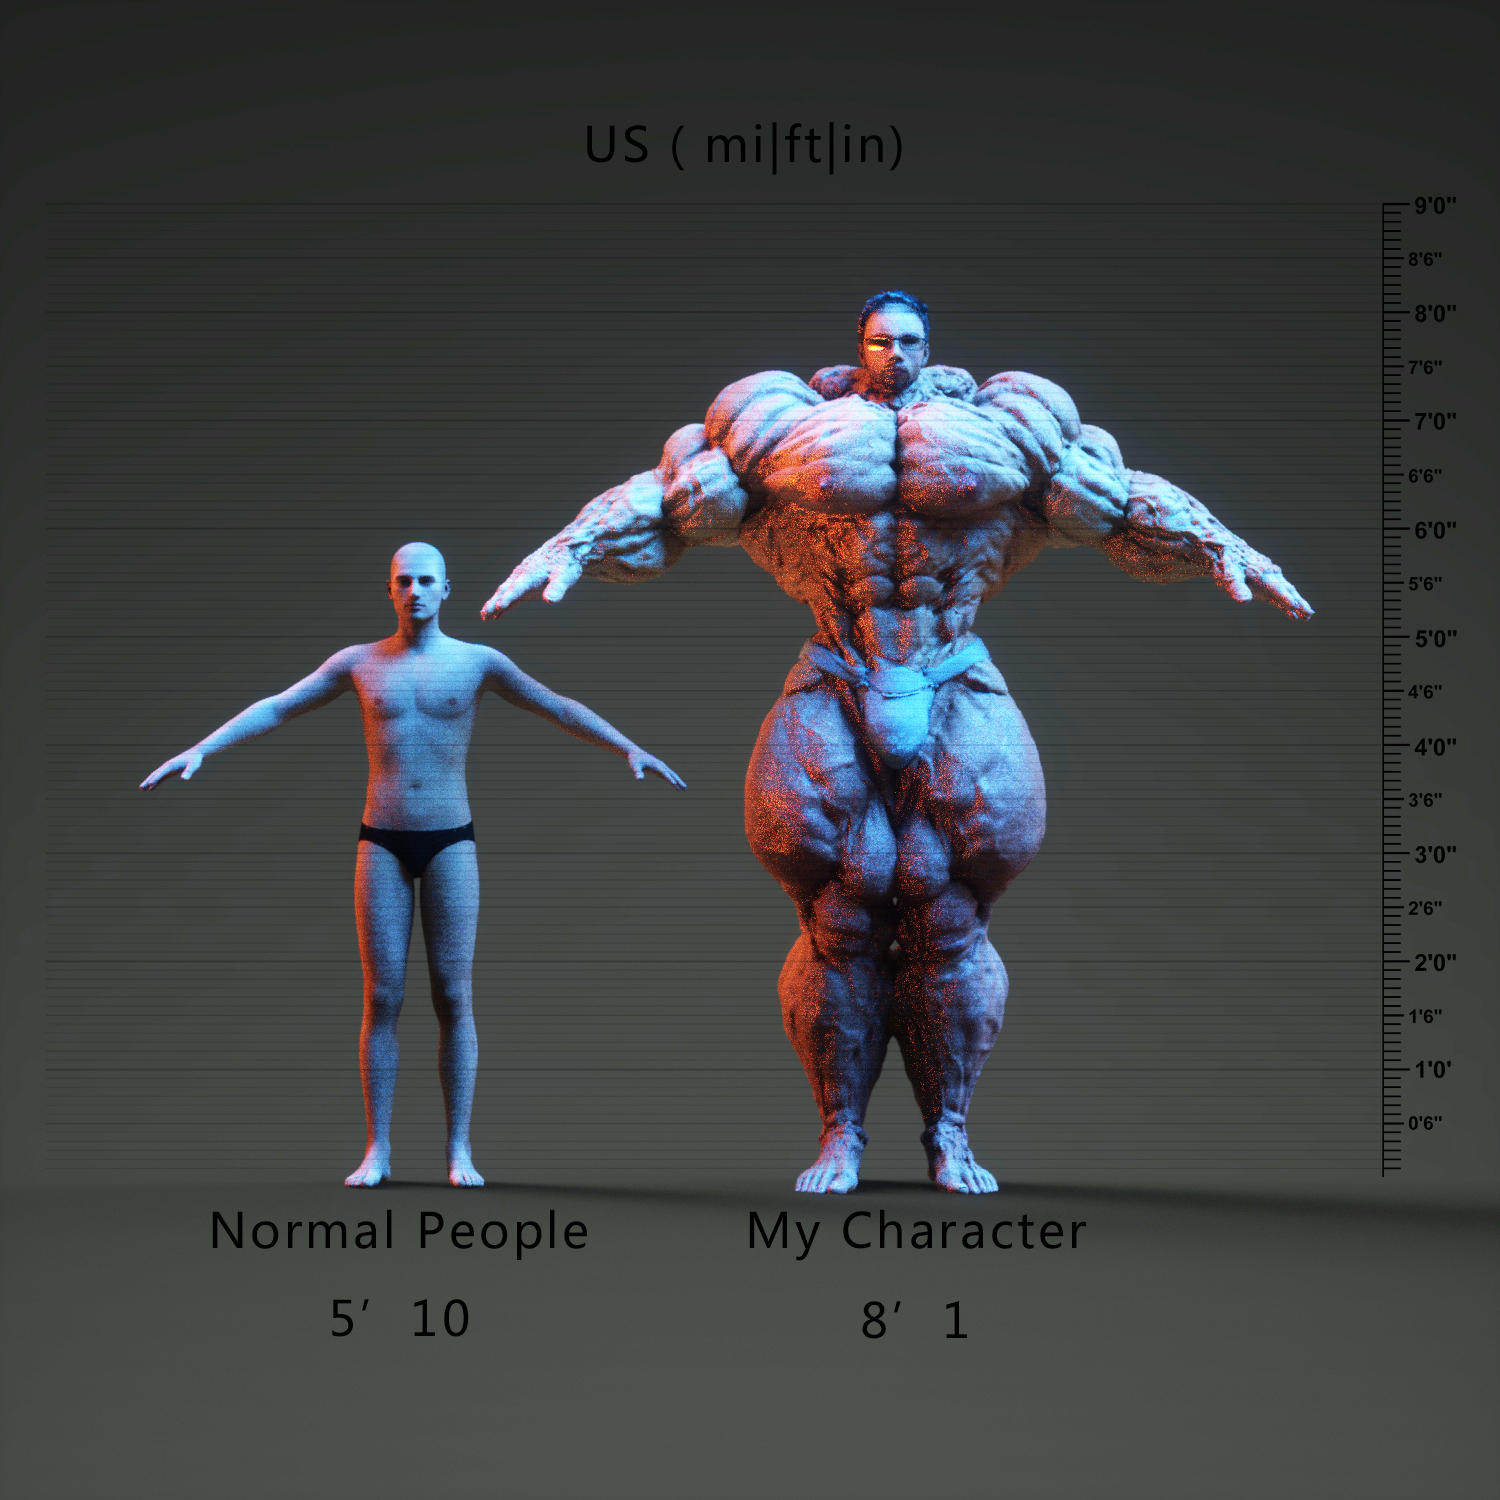 muscle size comparison chart 1 by alwa201 on deviantart